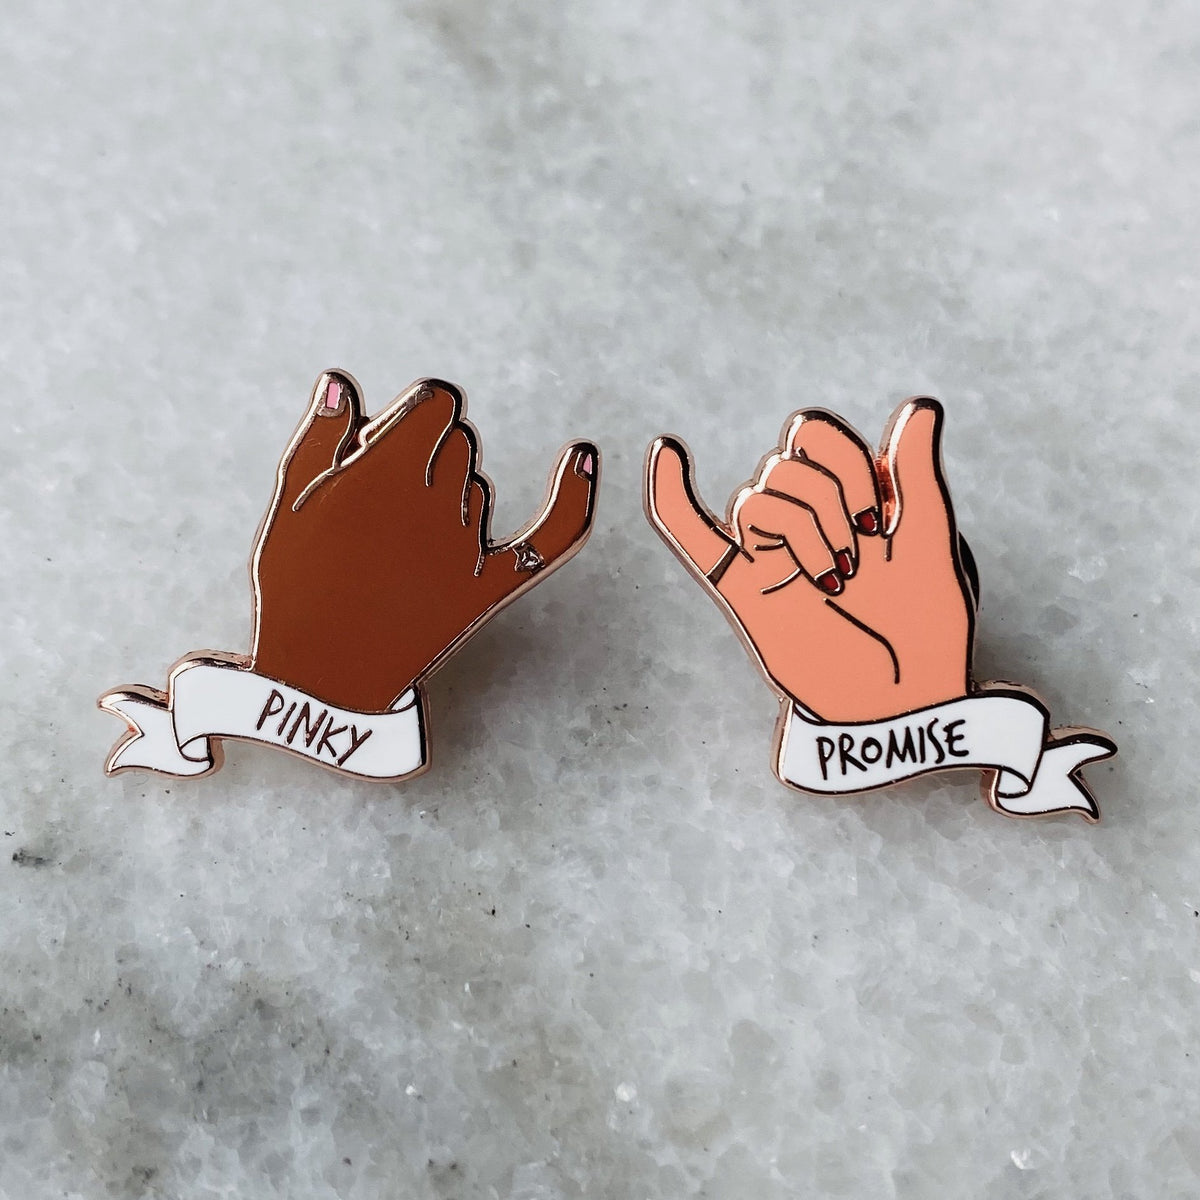 Pinky Promise Pin